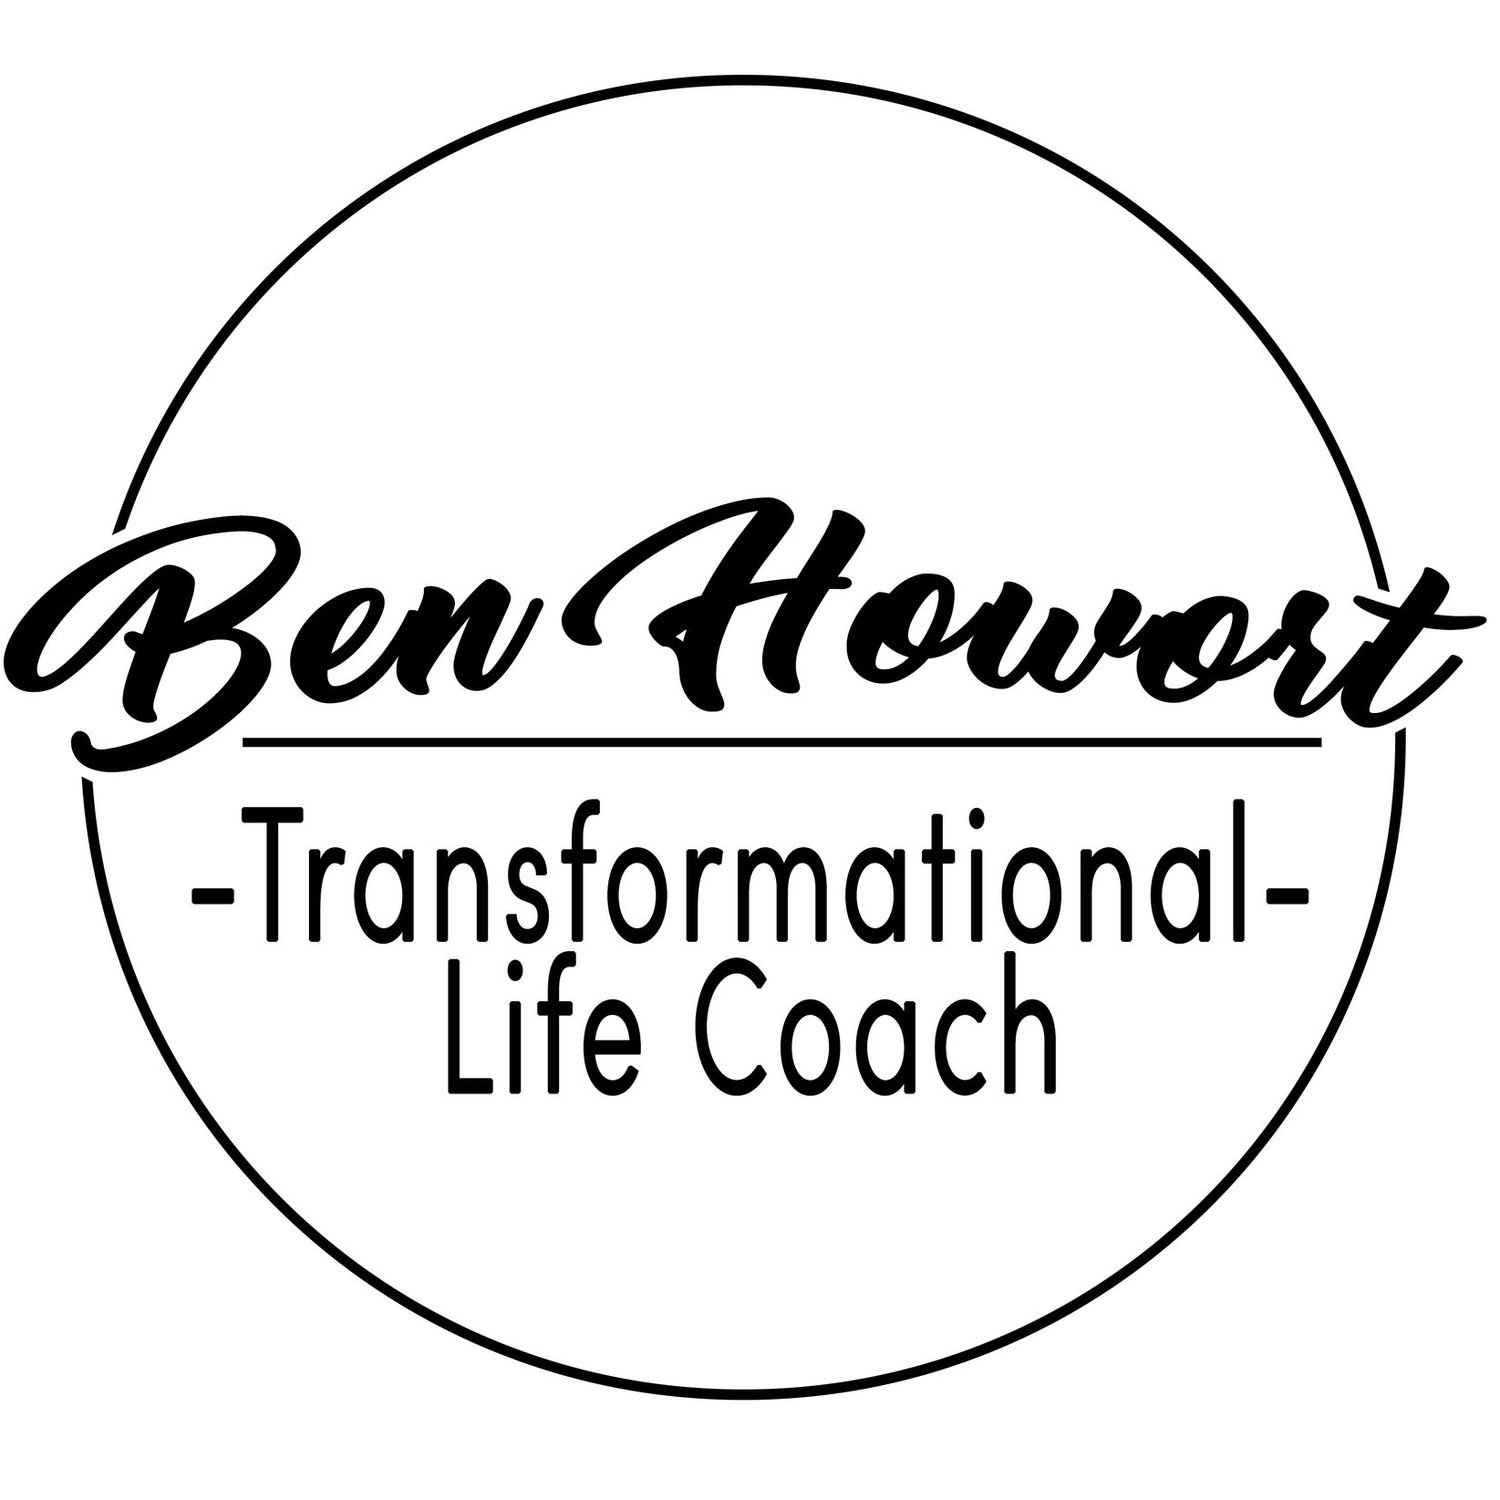 Ben Howort | Transformational Life Coach